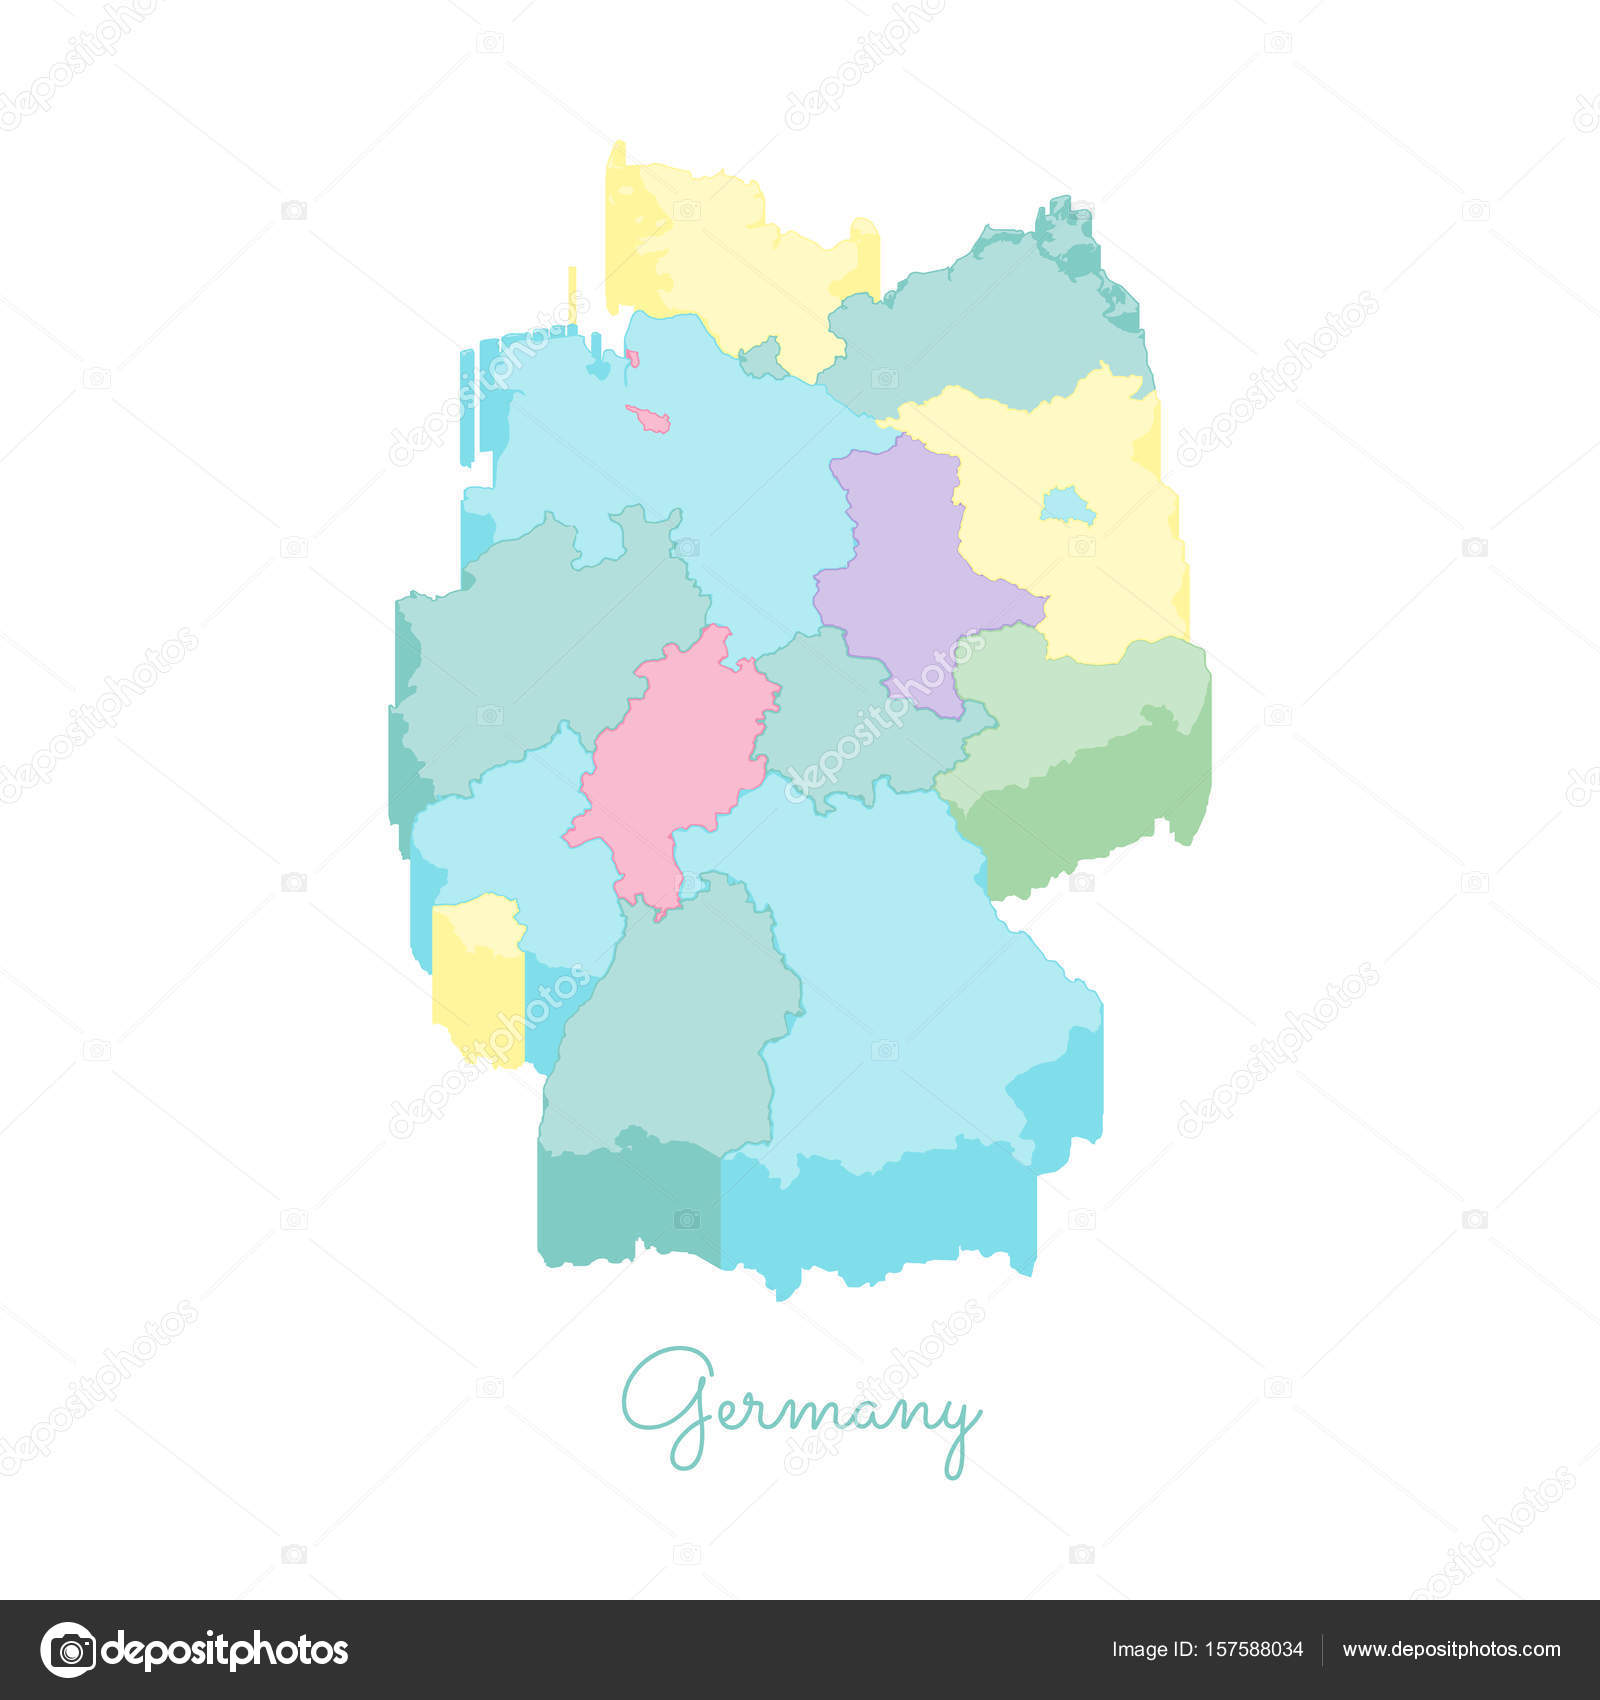 Map Of Germany Regions.Germany Region Map Colorful Isometric Top View Detailed Map Of